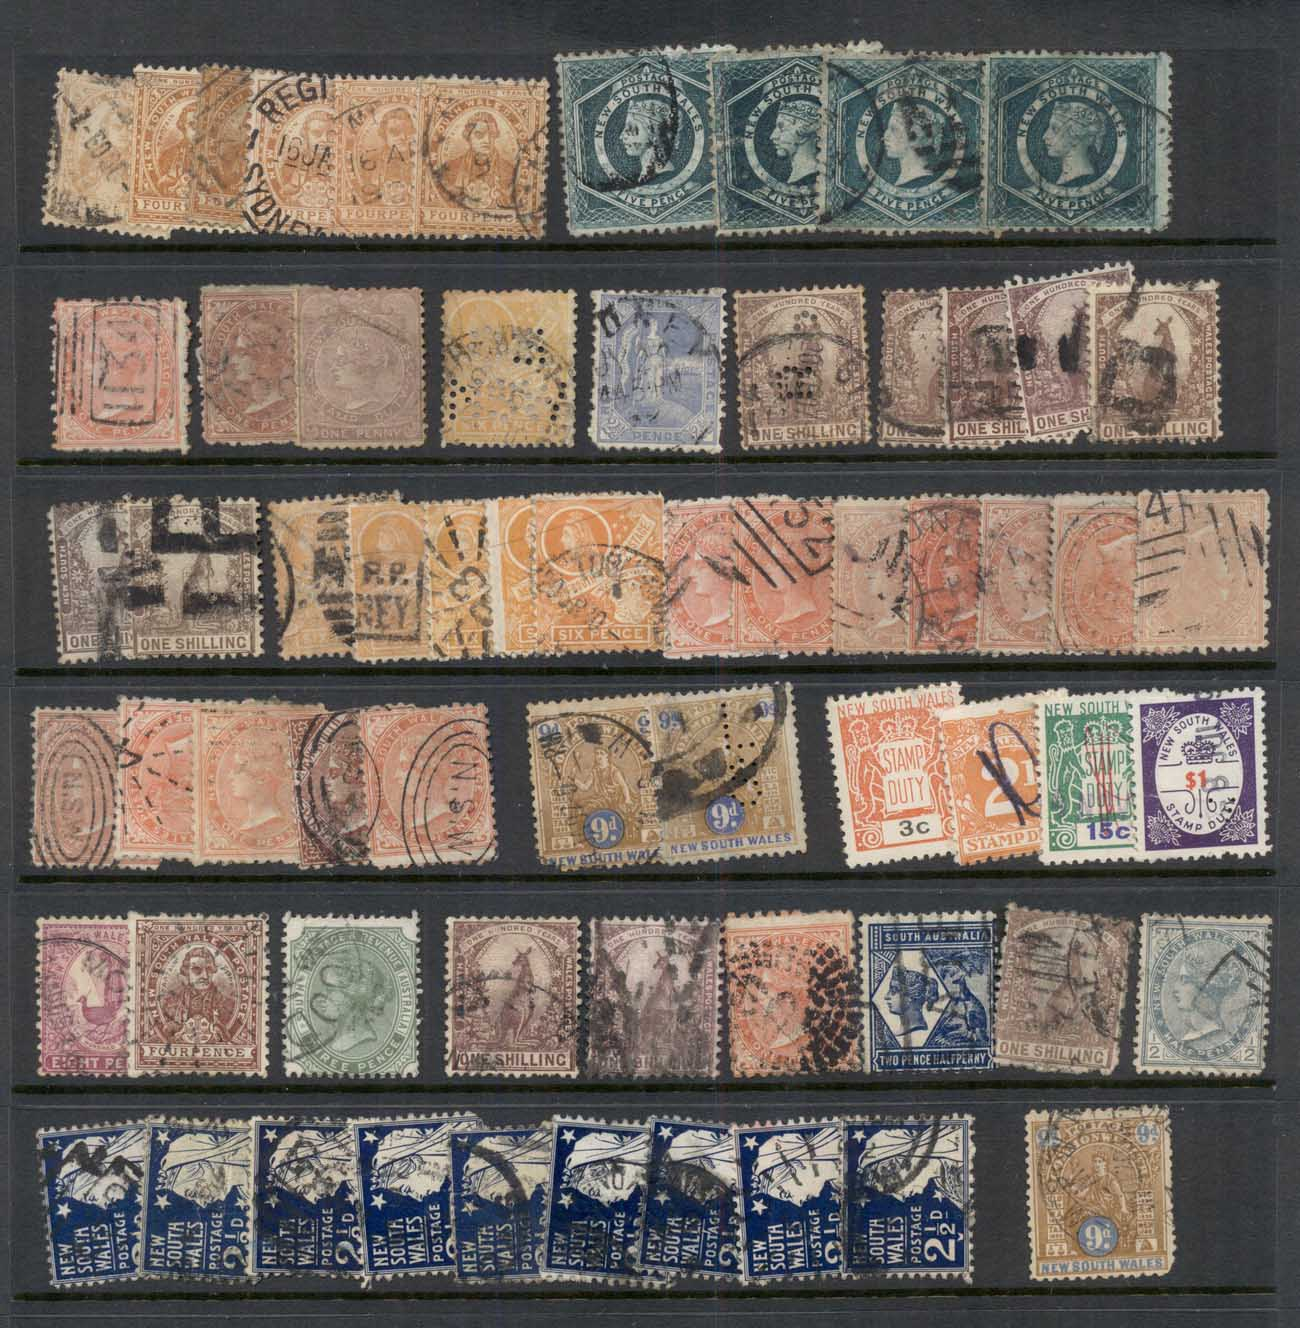 NSW 1860's on Assorted Oddments, duplicates, interest for postmarks, perforations, shades & watermark varieties, (faults)10 sca